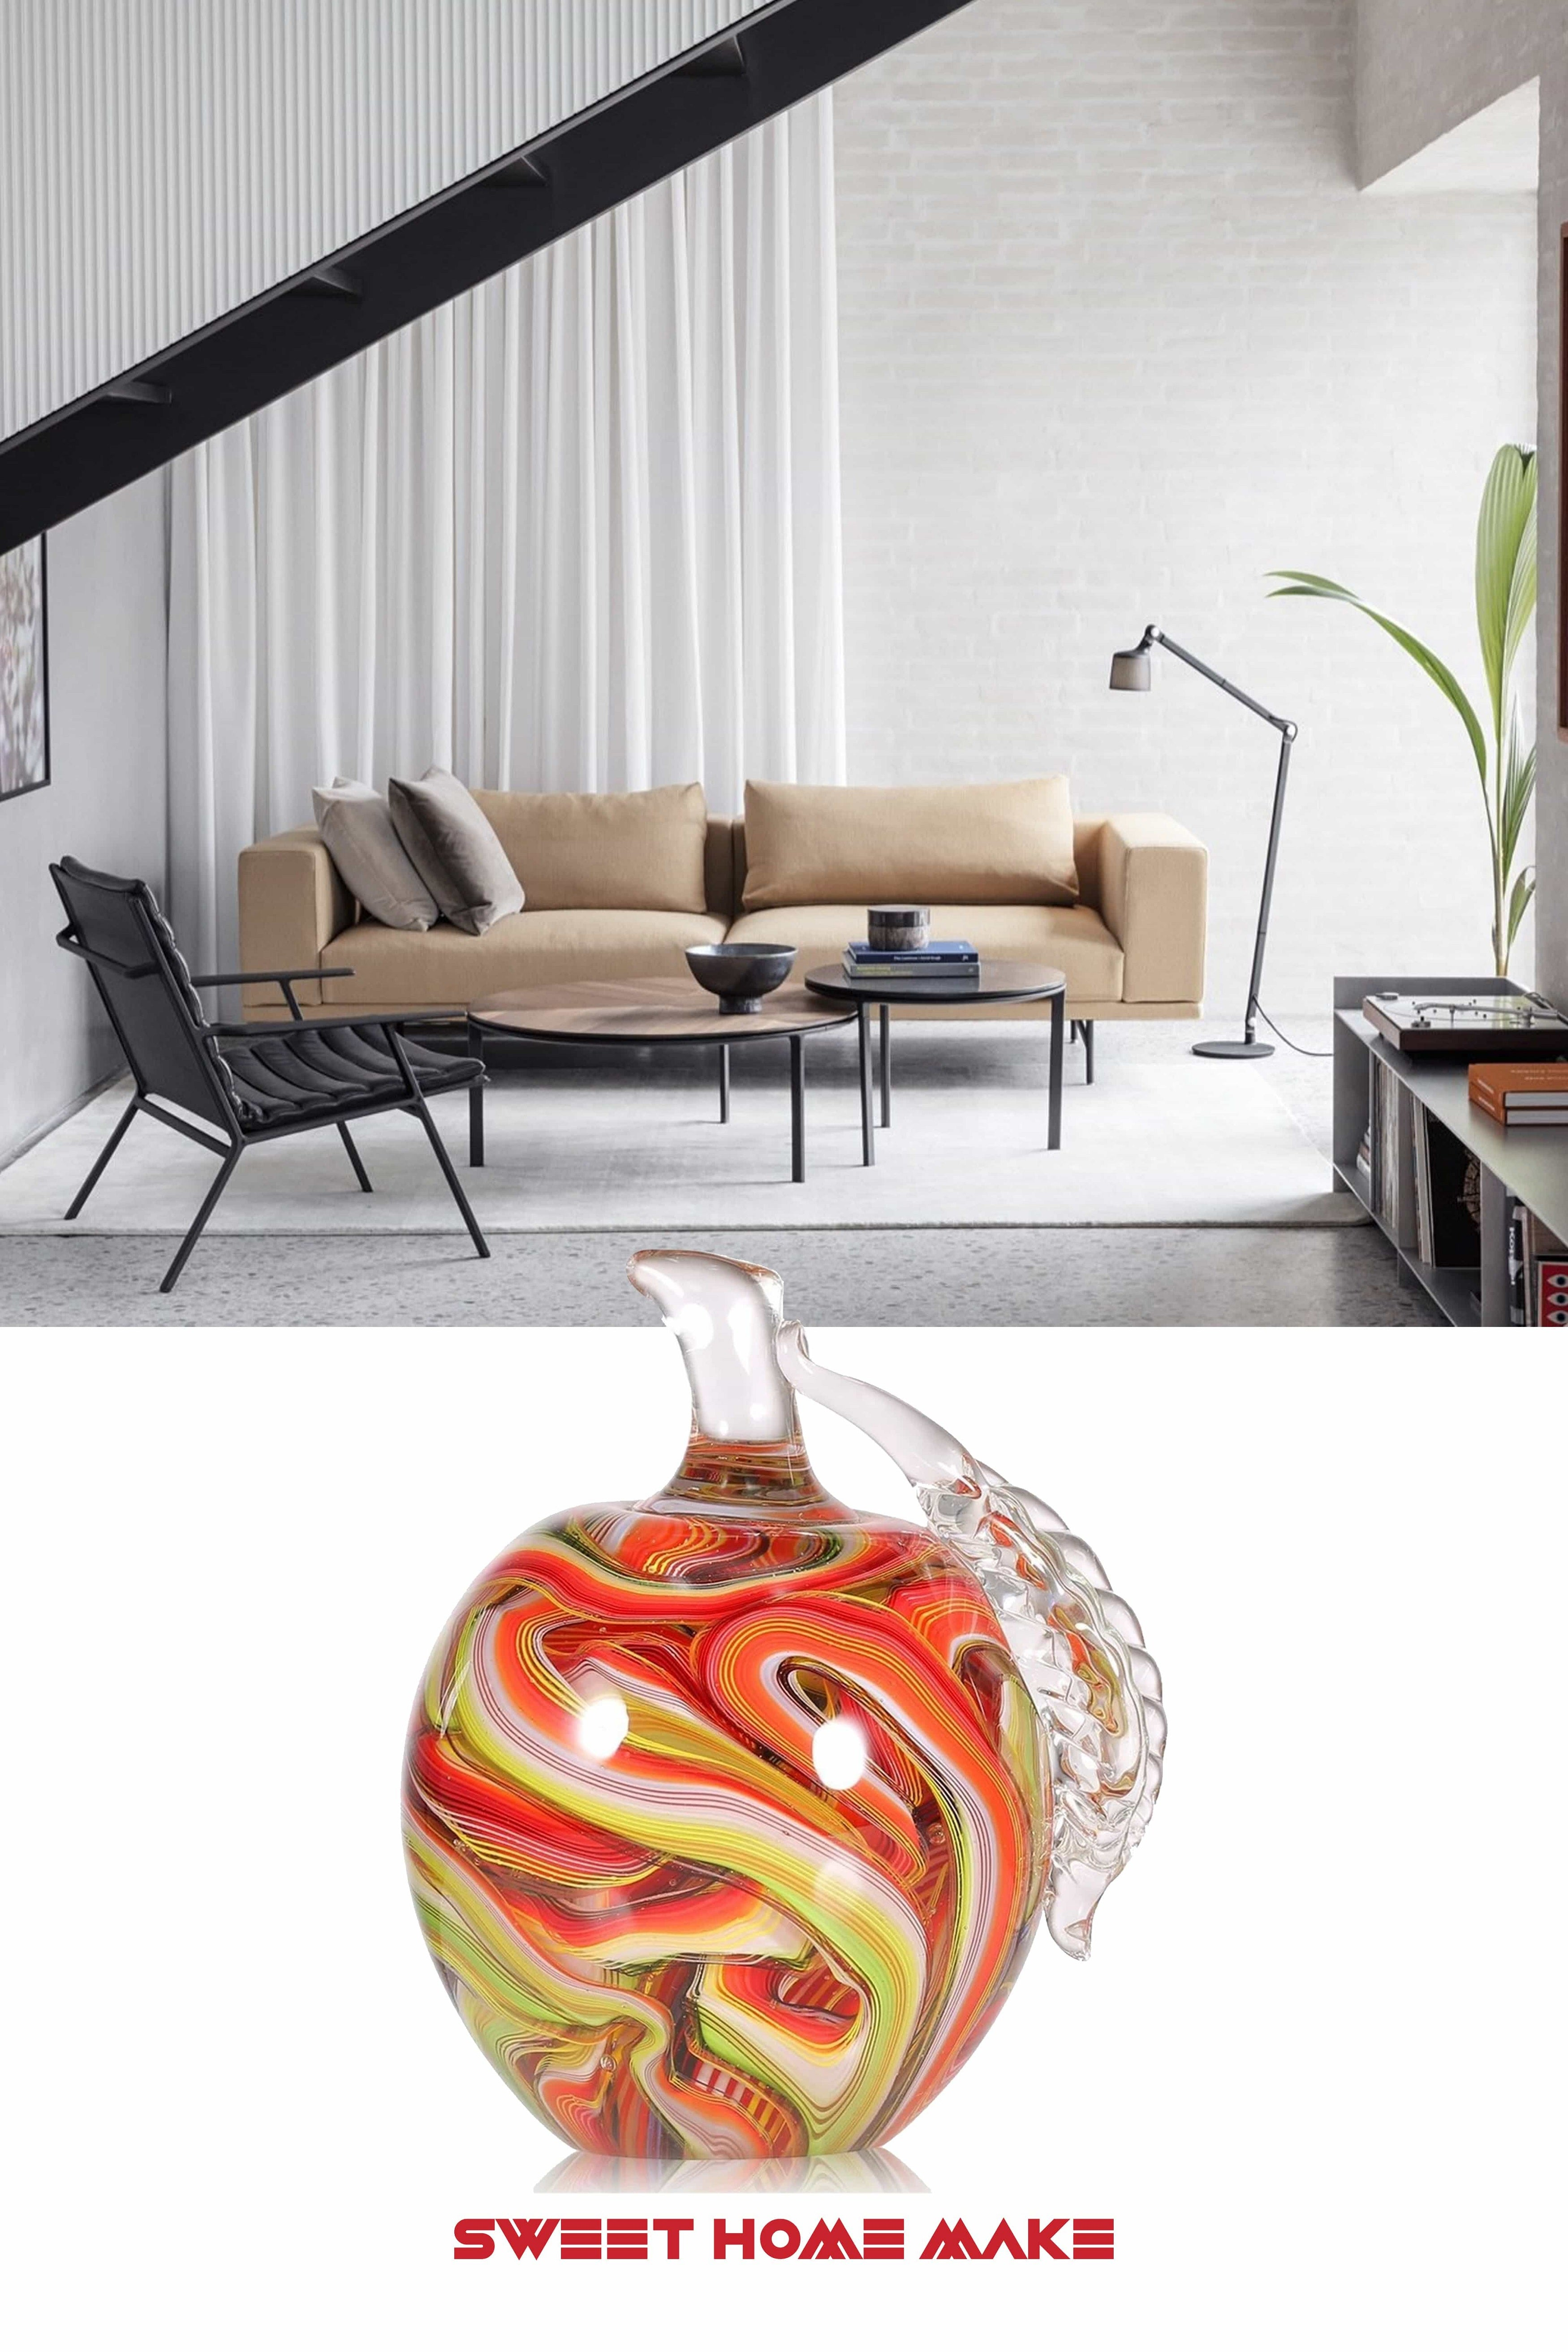 Glass Apple Figurine Ornament At The Living Room Coffee Table